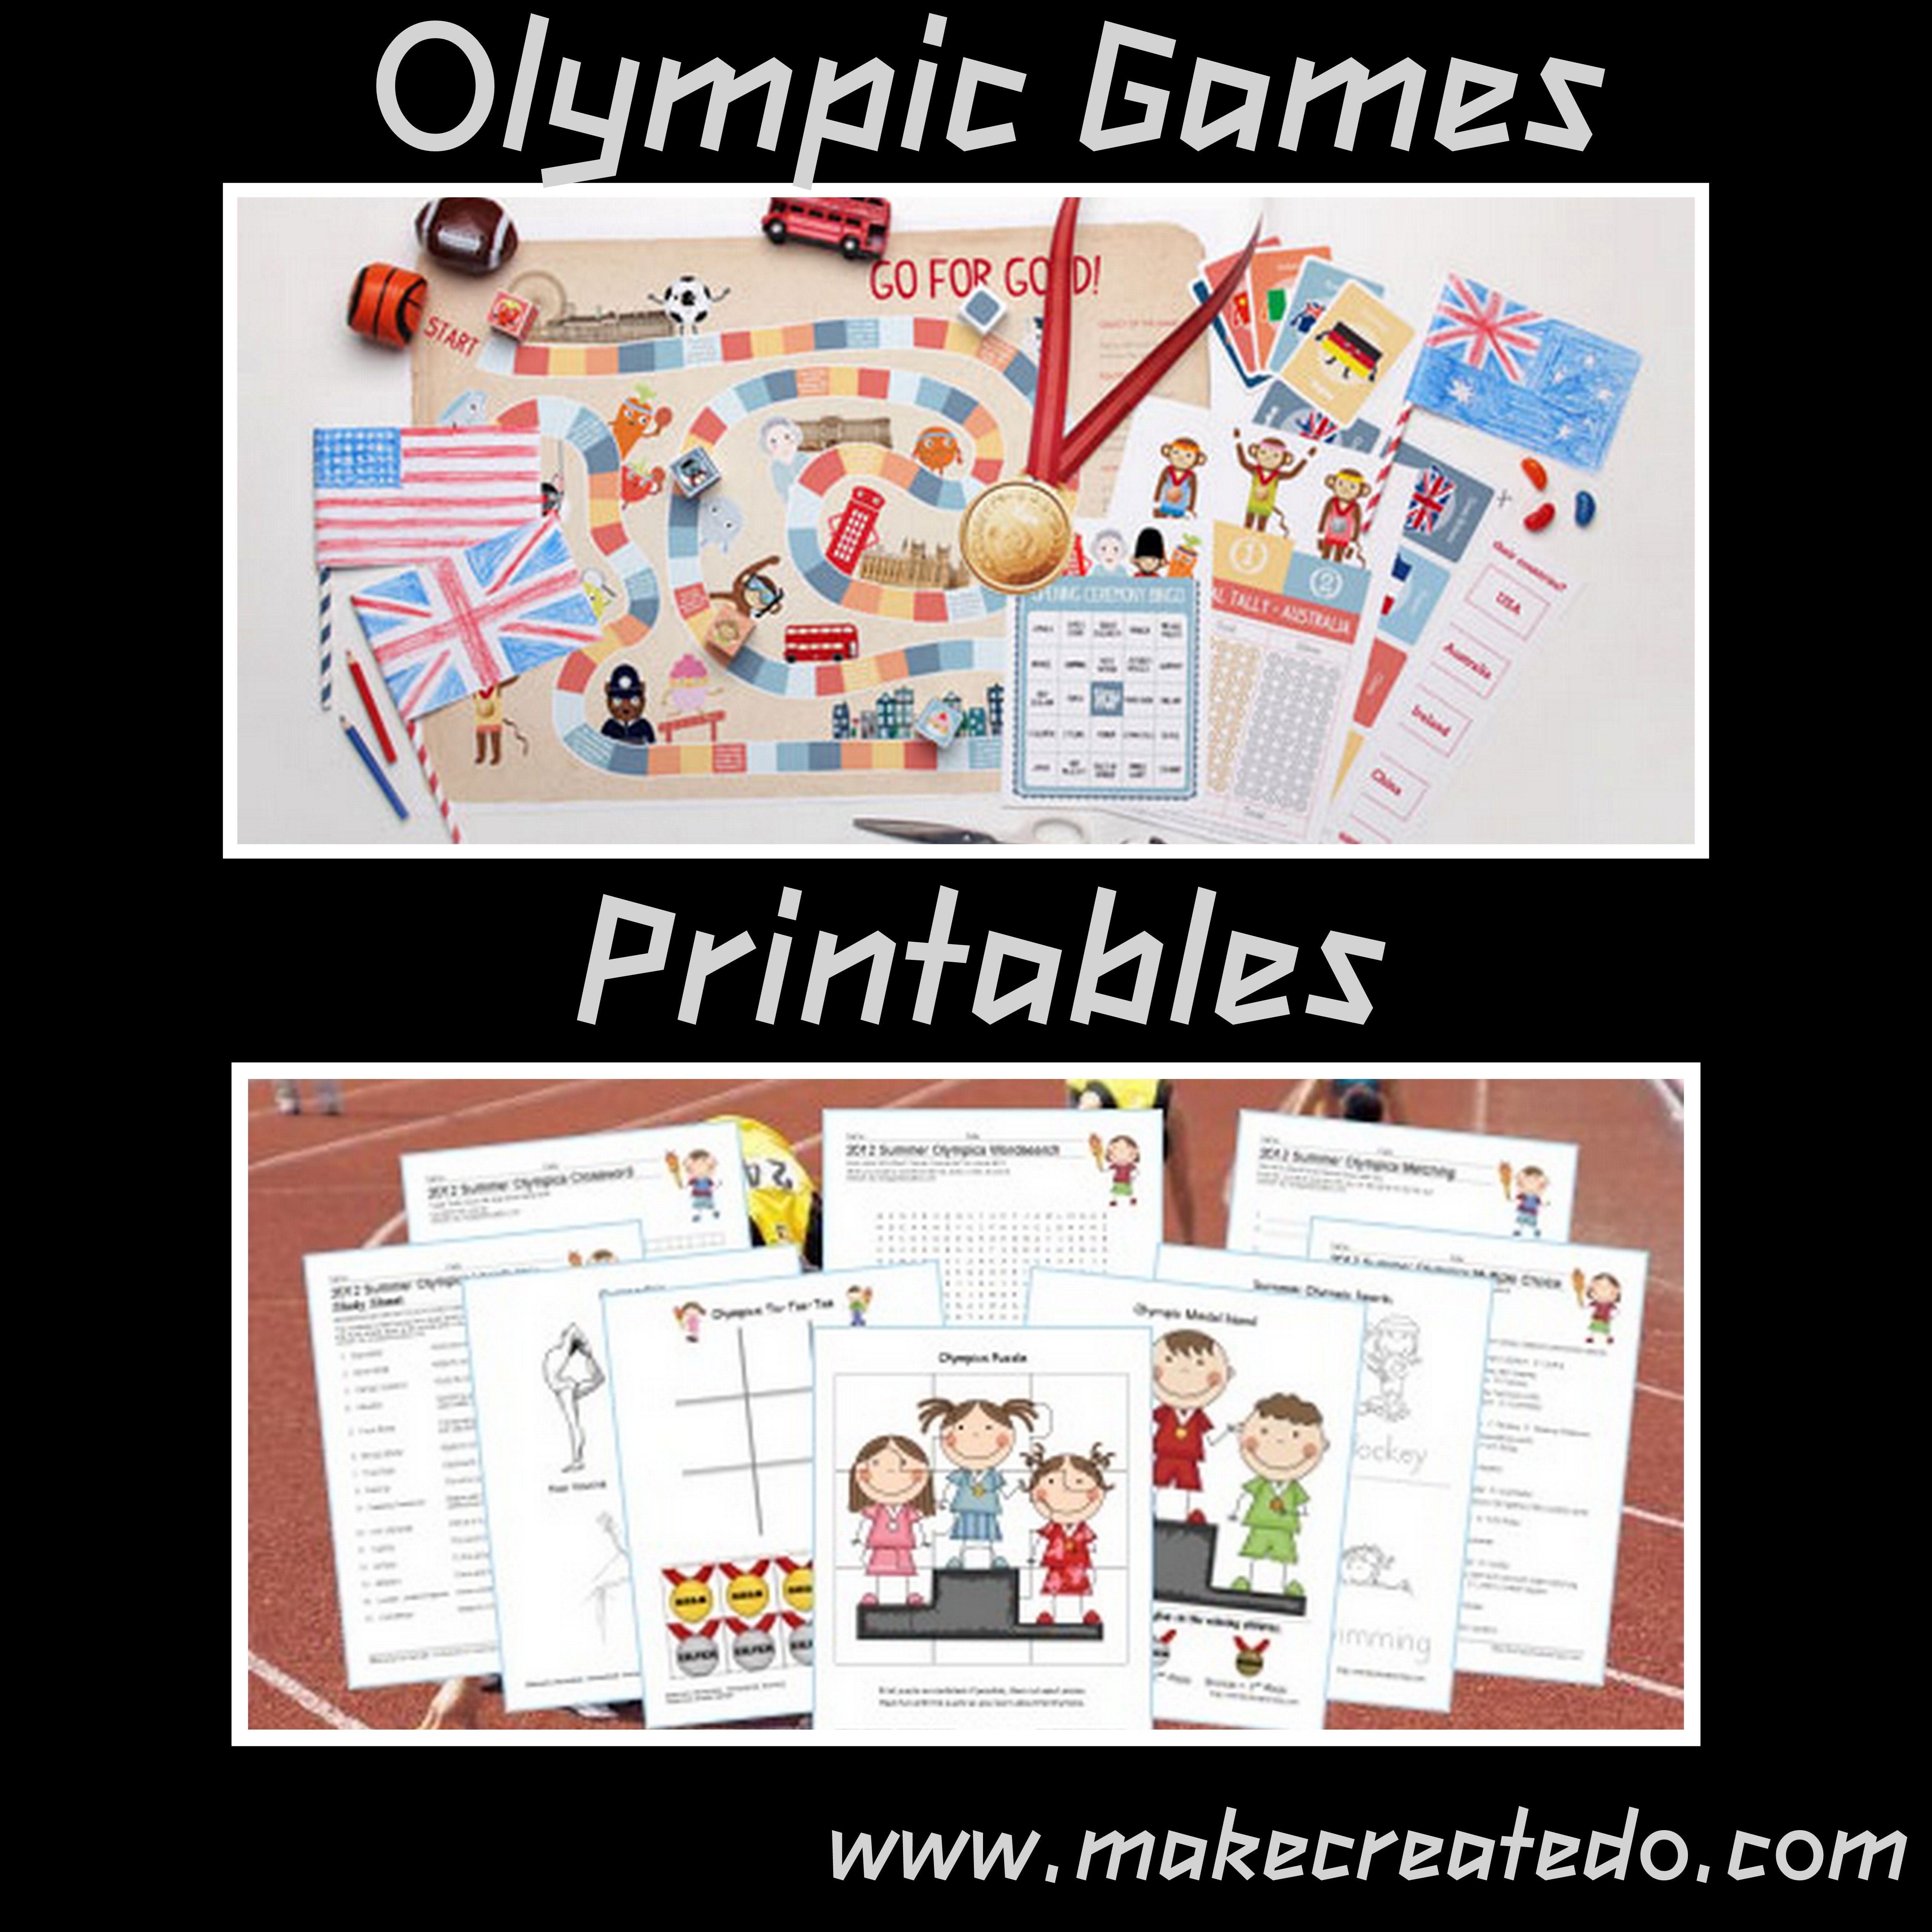 Olympic Games Printables